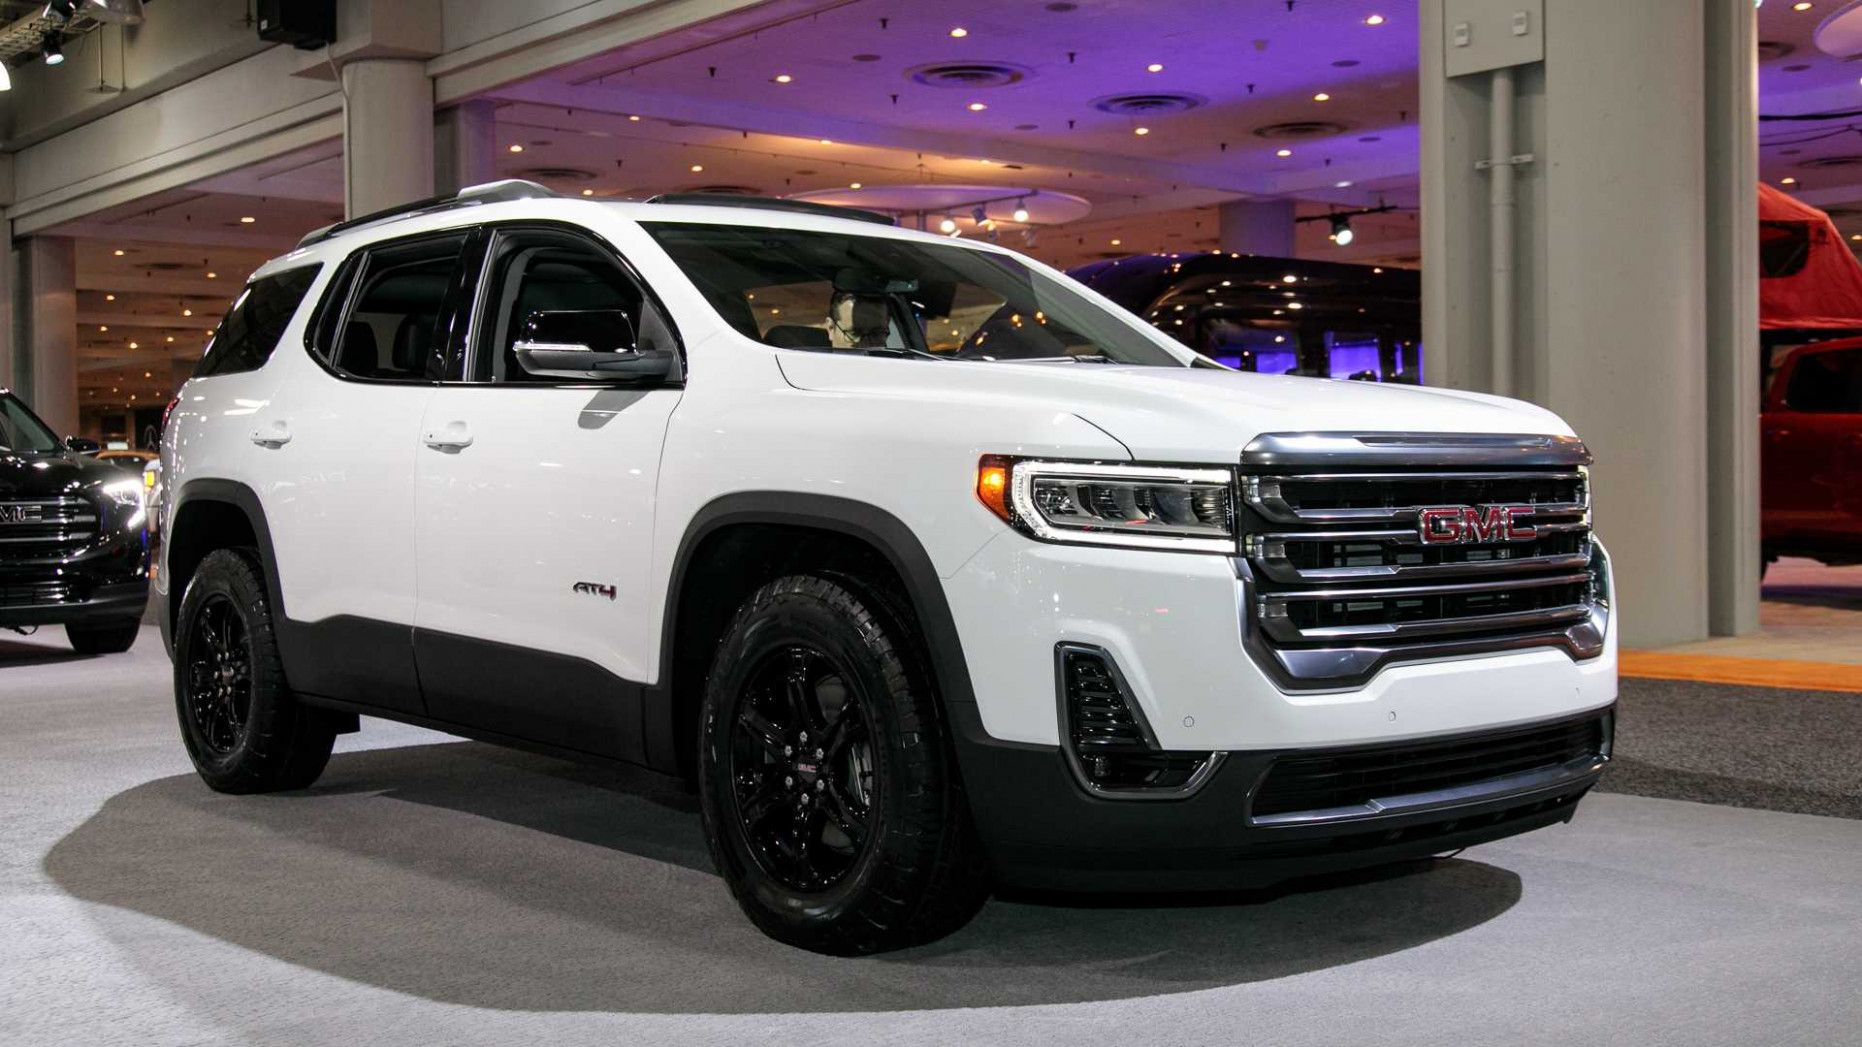 4 Gmc Acadia At4 Reportedly Starts At 4 4 2020 Gmc Acadia Sle 1 Gmc Suv Chevy Equinox Gmc